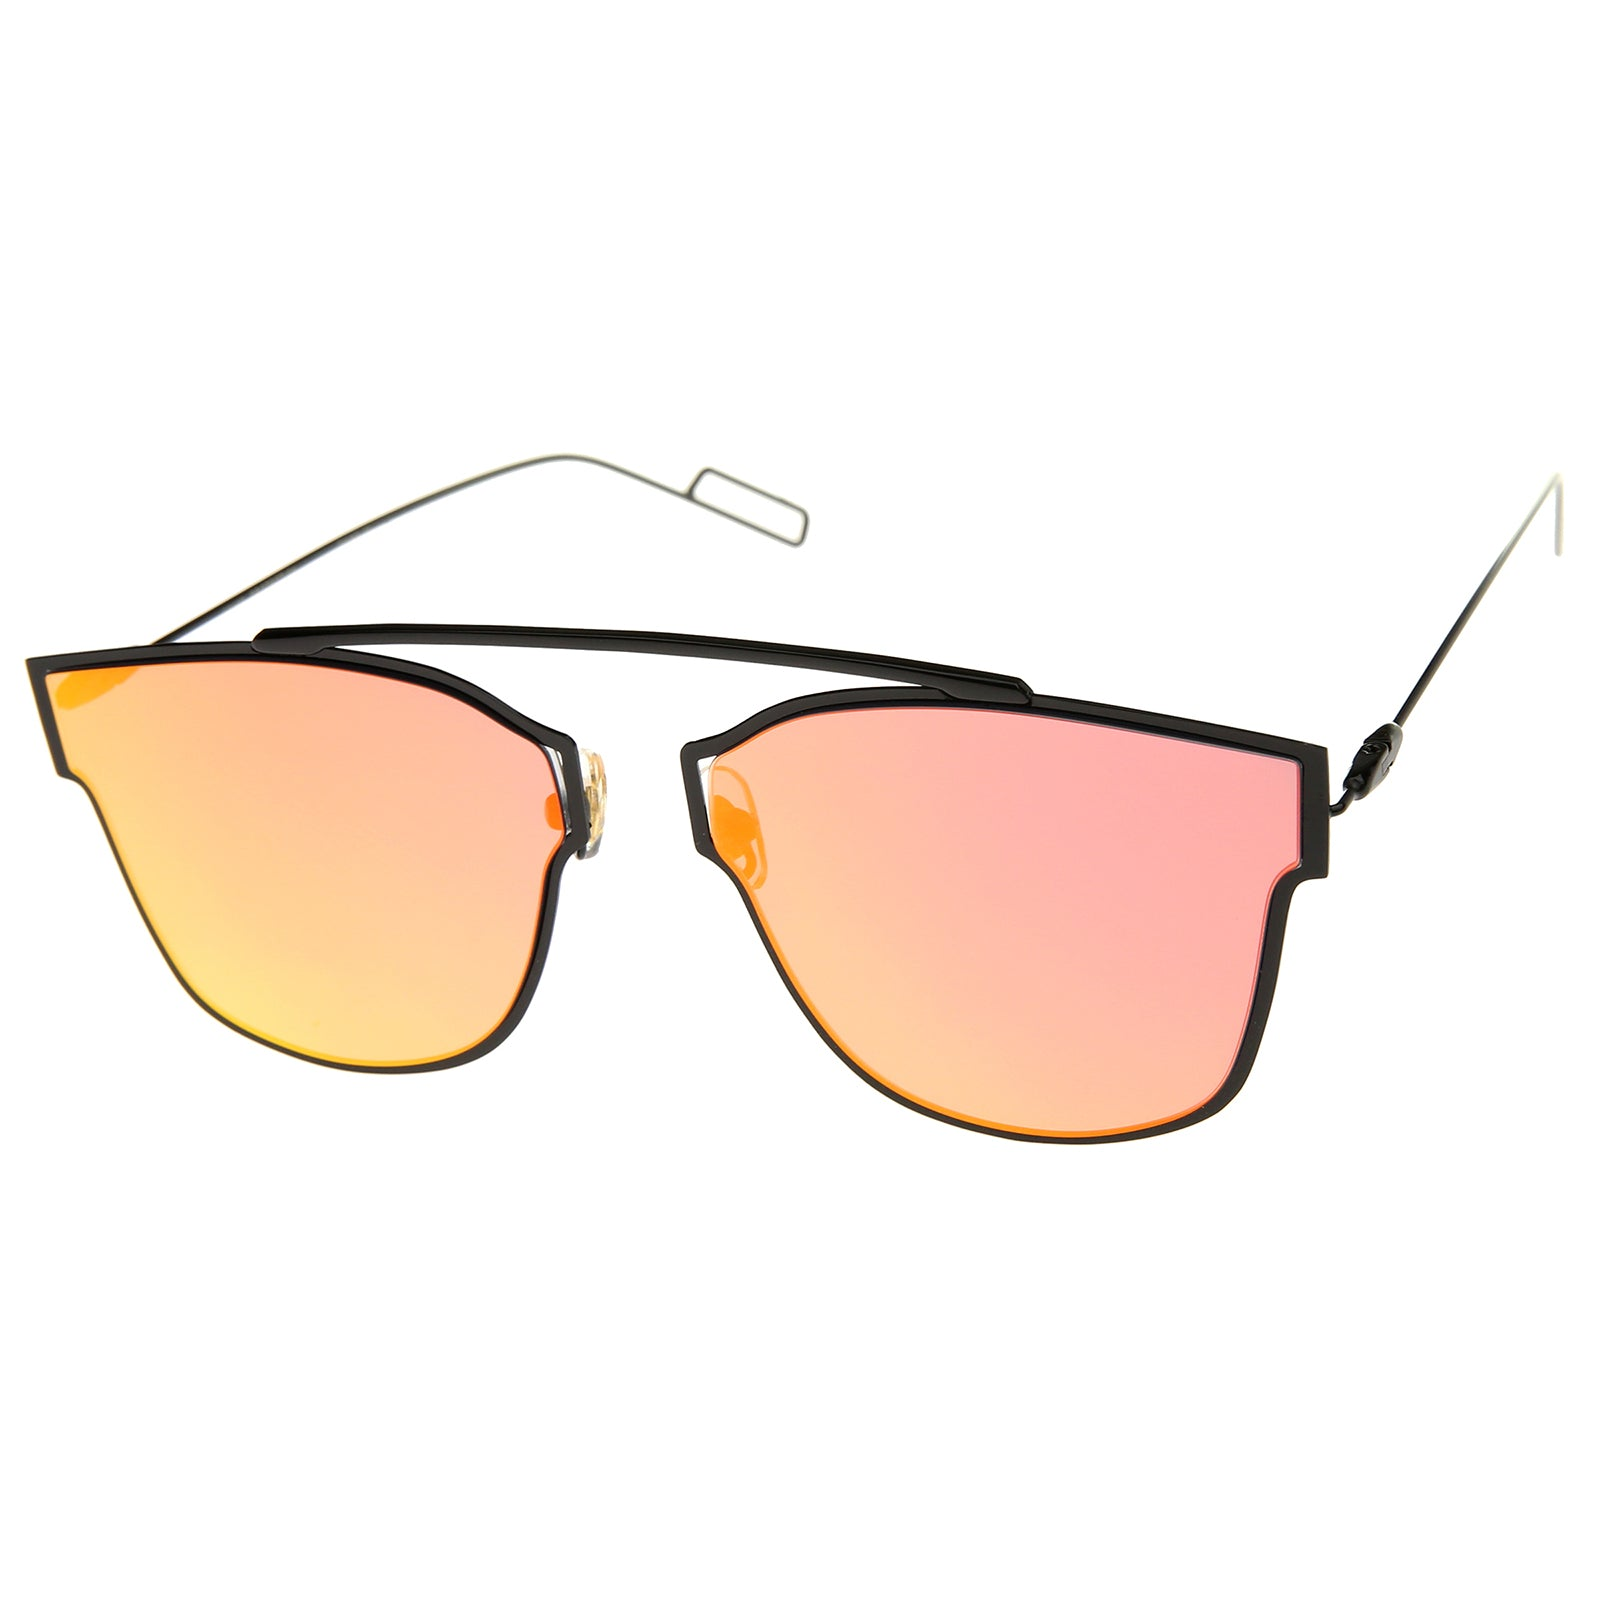 Modern Flash Mirror Lens Ultra Thin Open Metal Minimal Pantos Aviator Sunglasses 59mm - sunglass.la - 2